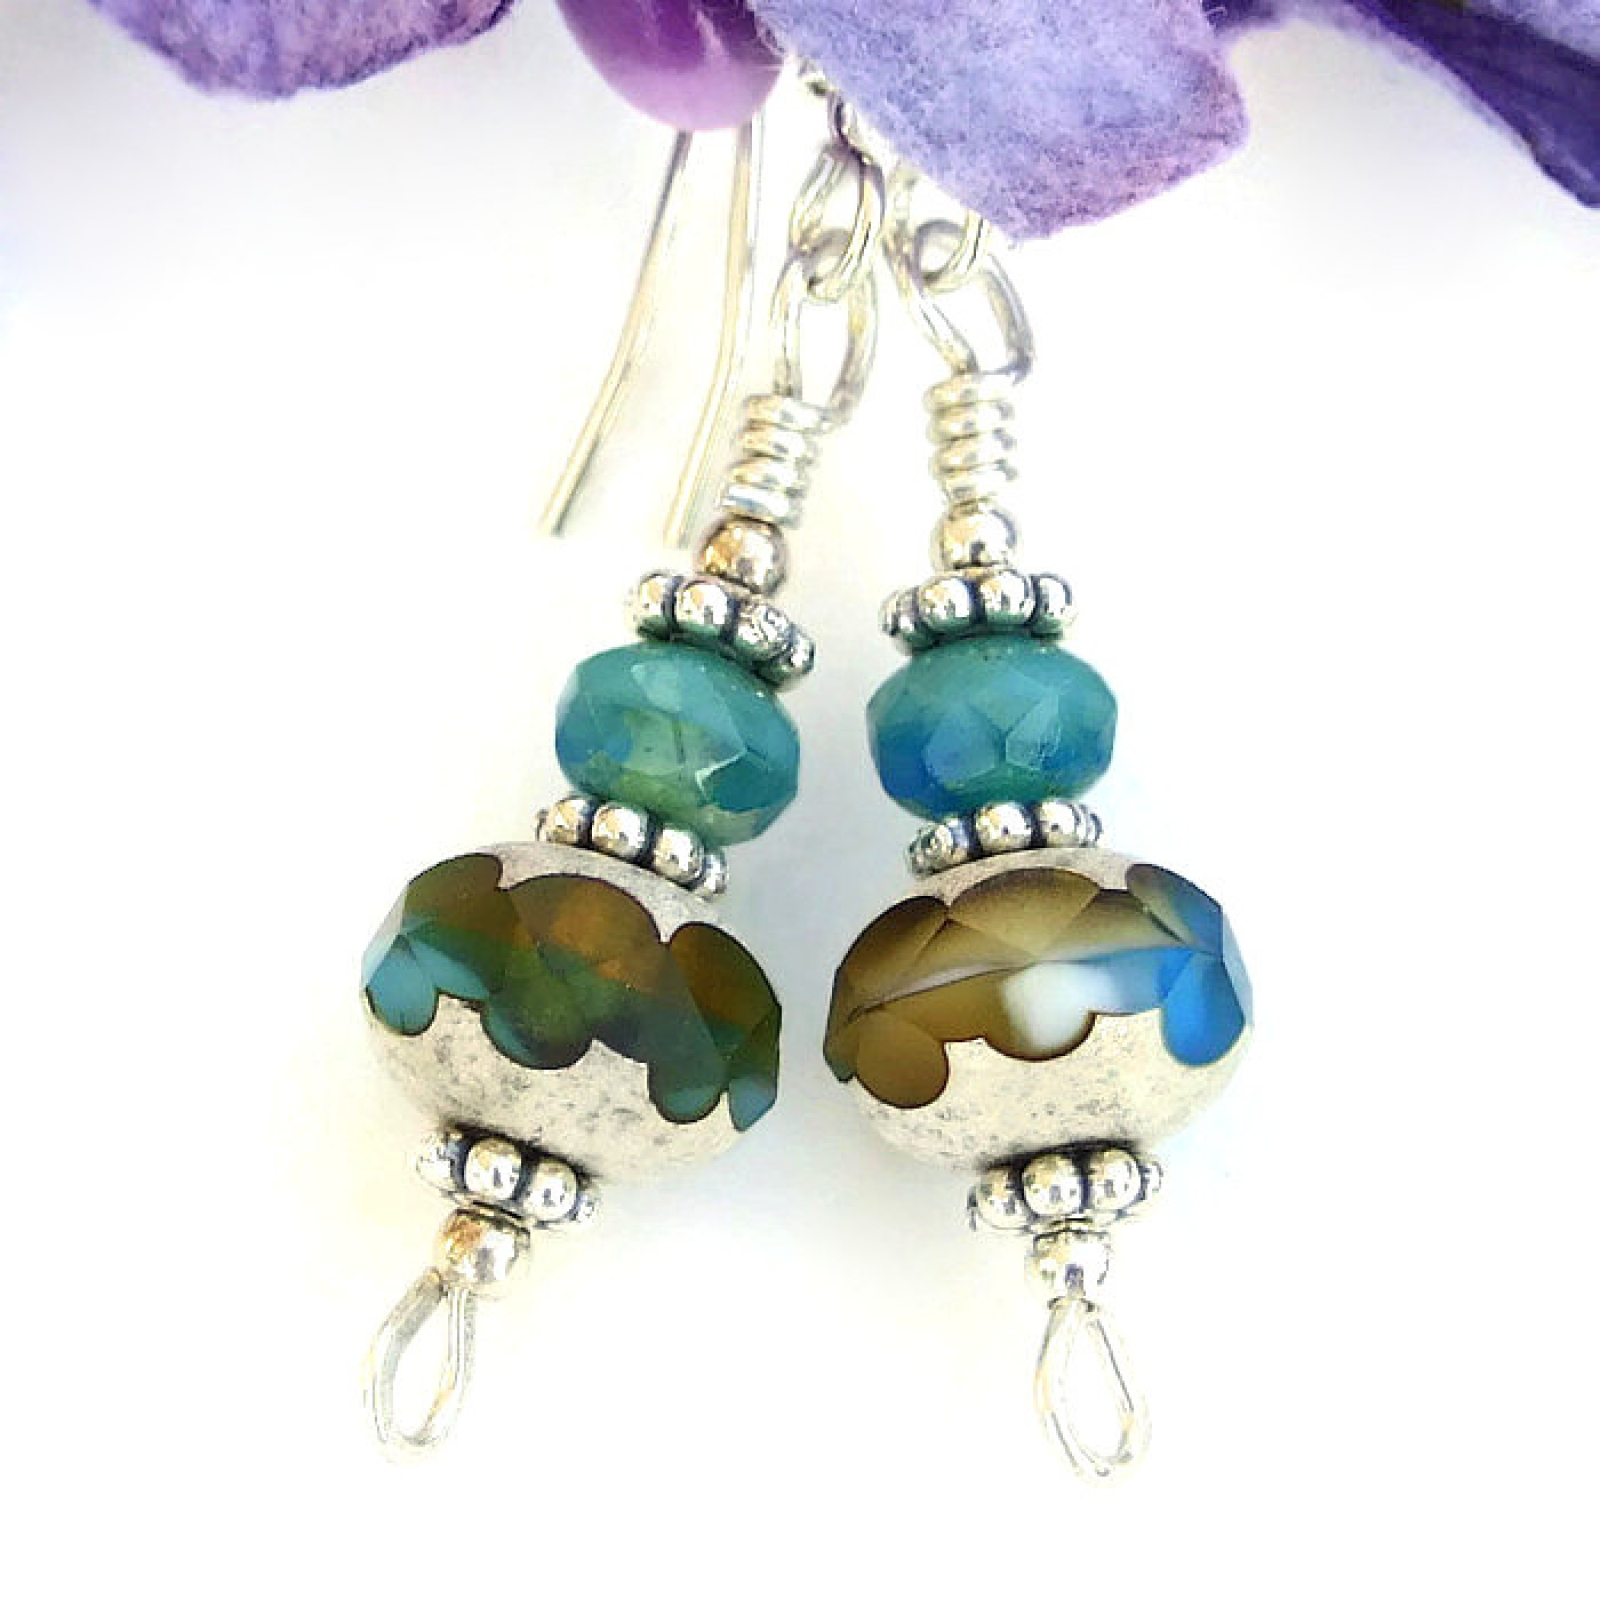 Turquoise and Amber Earrings, Czech Glass Silver Handmade Jewelry ...